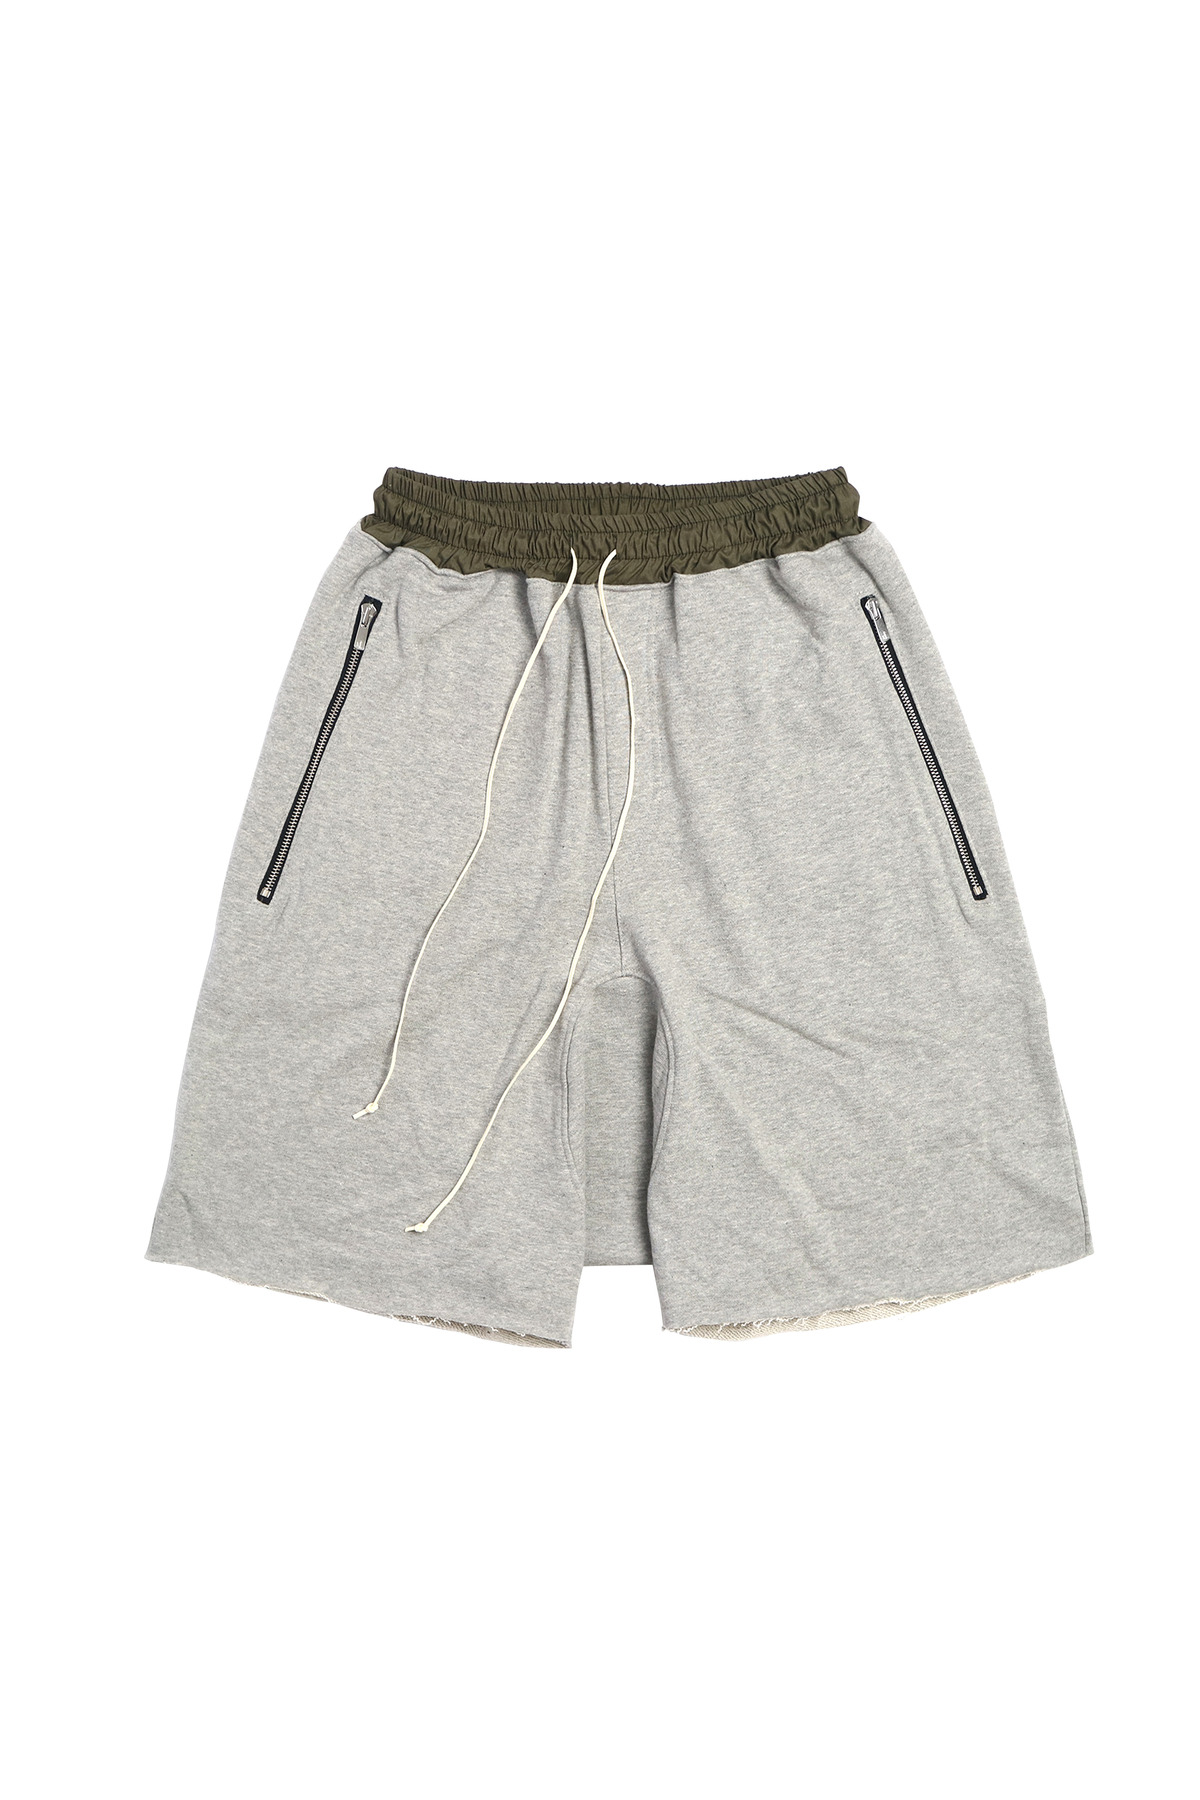 GREY DRAWSTRING SHORT PANTS